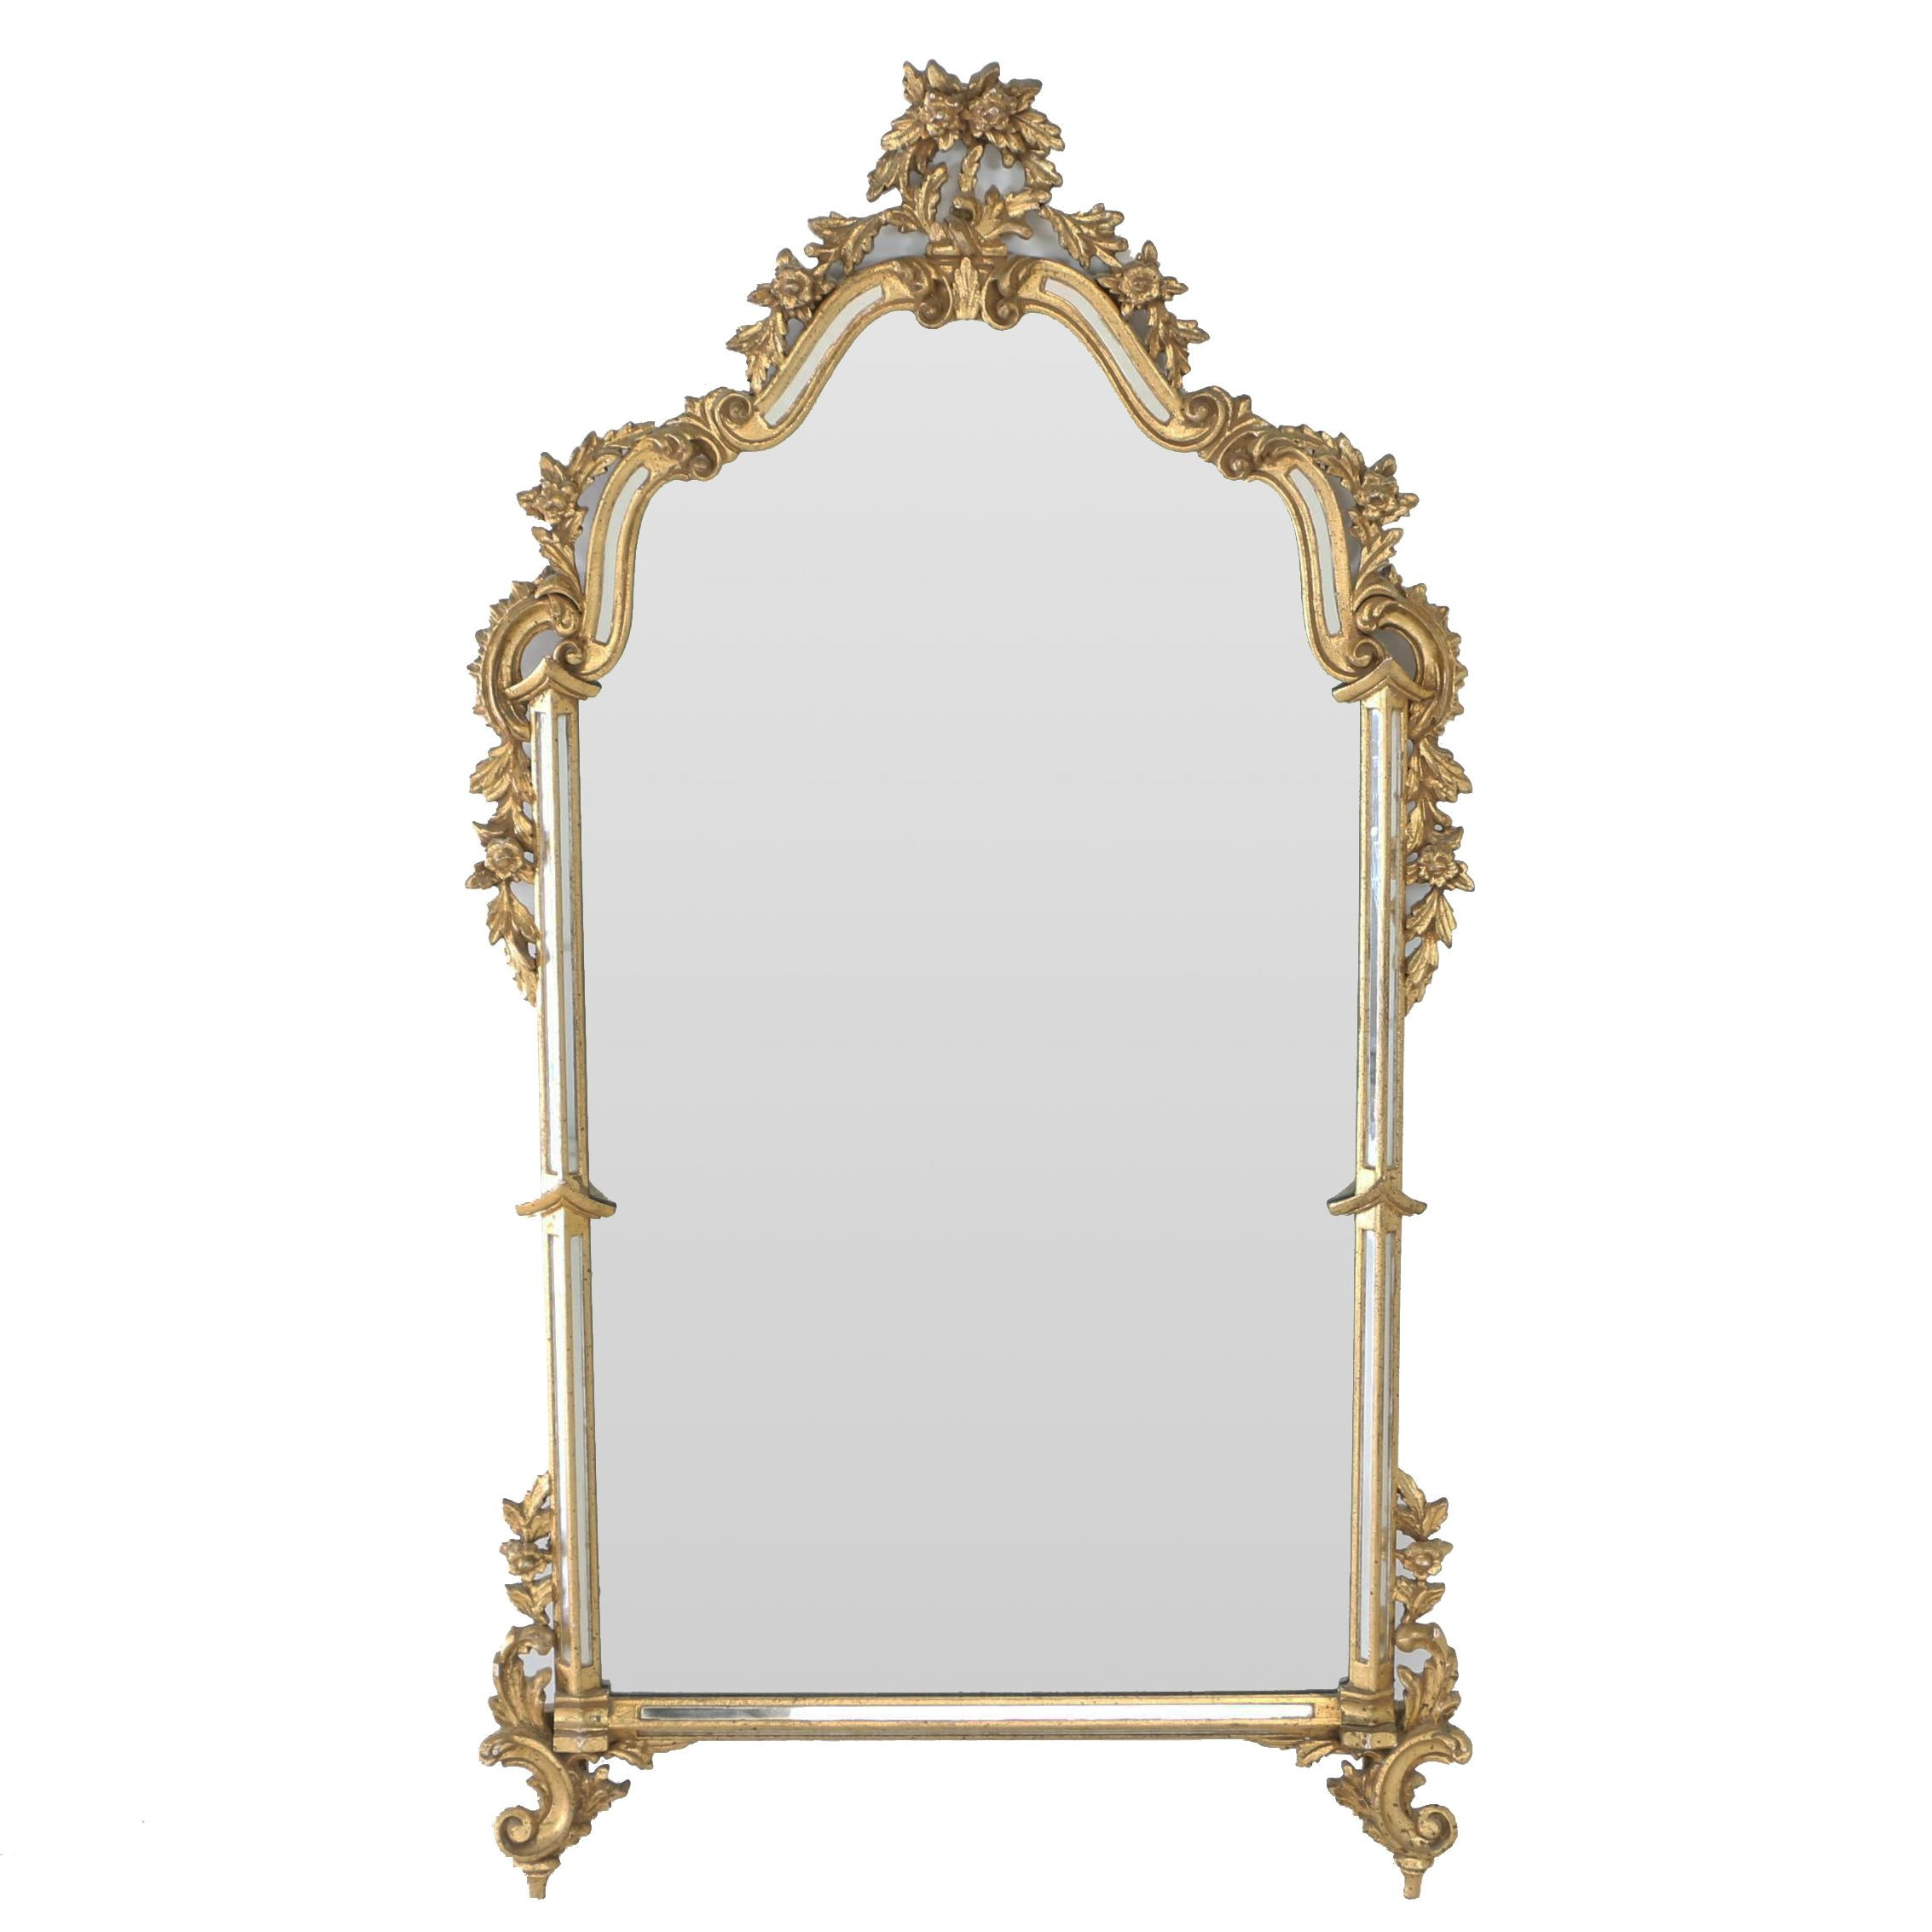 Italian Giltwood Mirror by La Barge, 20th Century